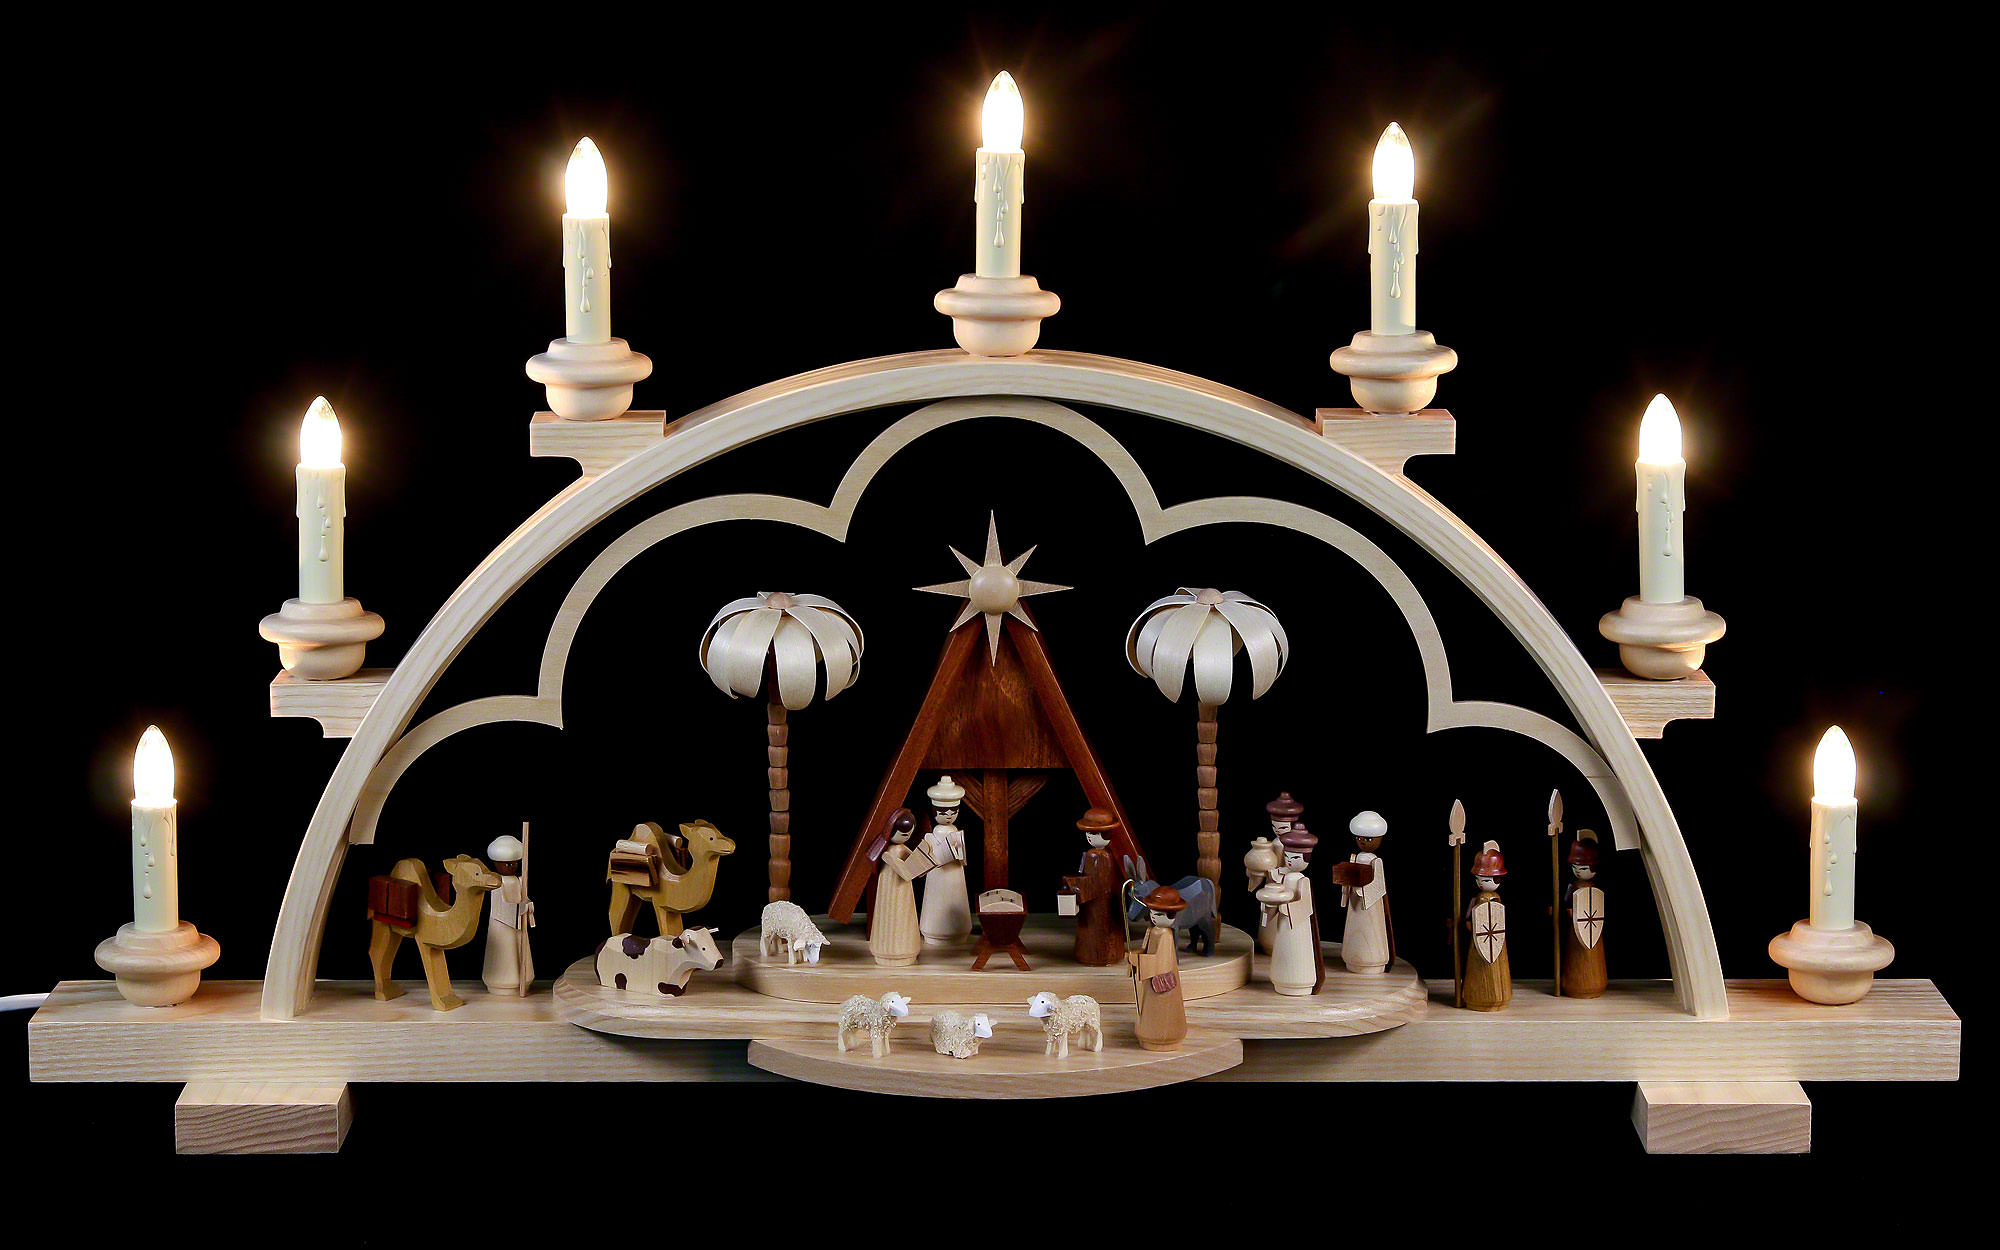 Candle arch christmas story 64 cm 56in 120v electr for Arch candle christmas decoration